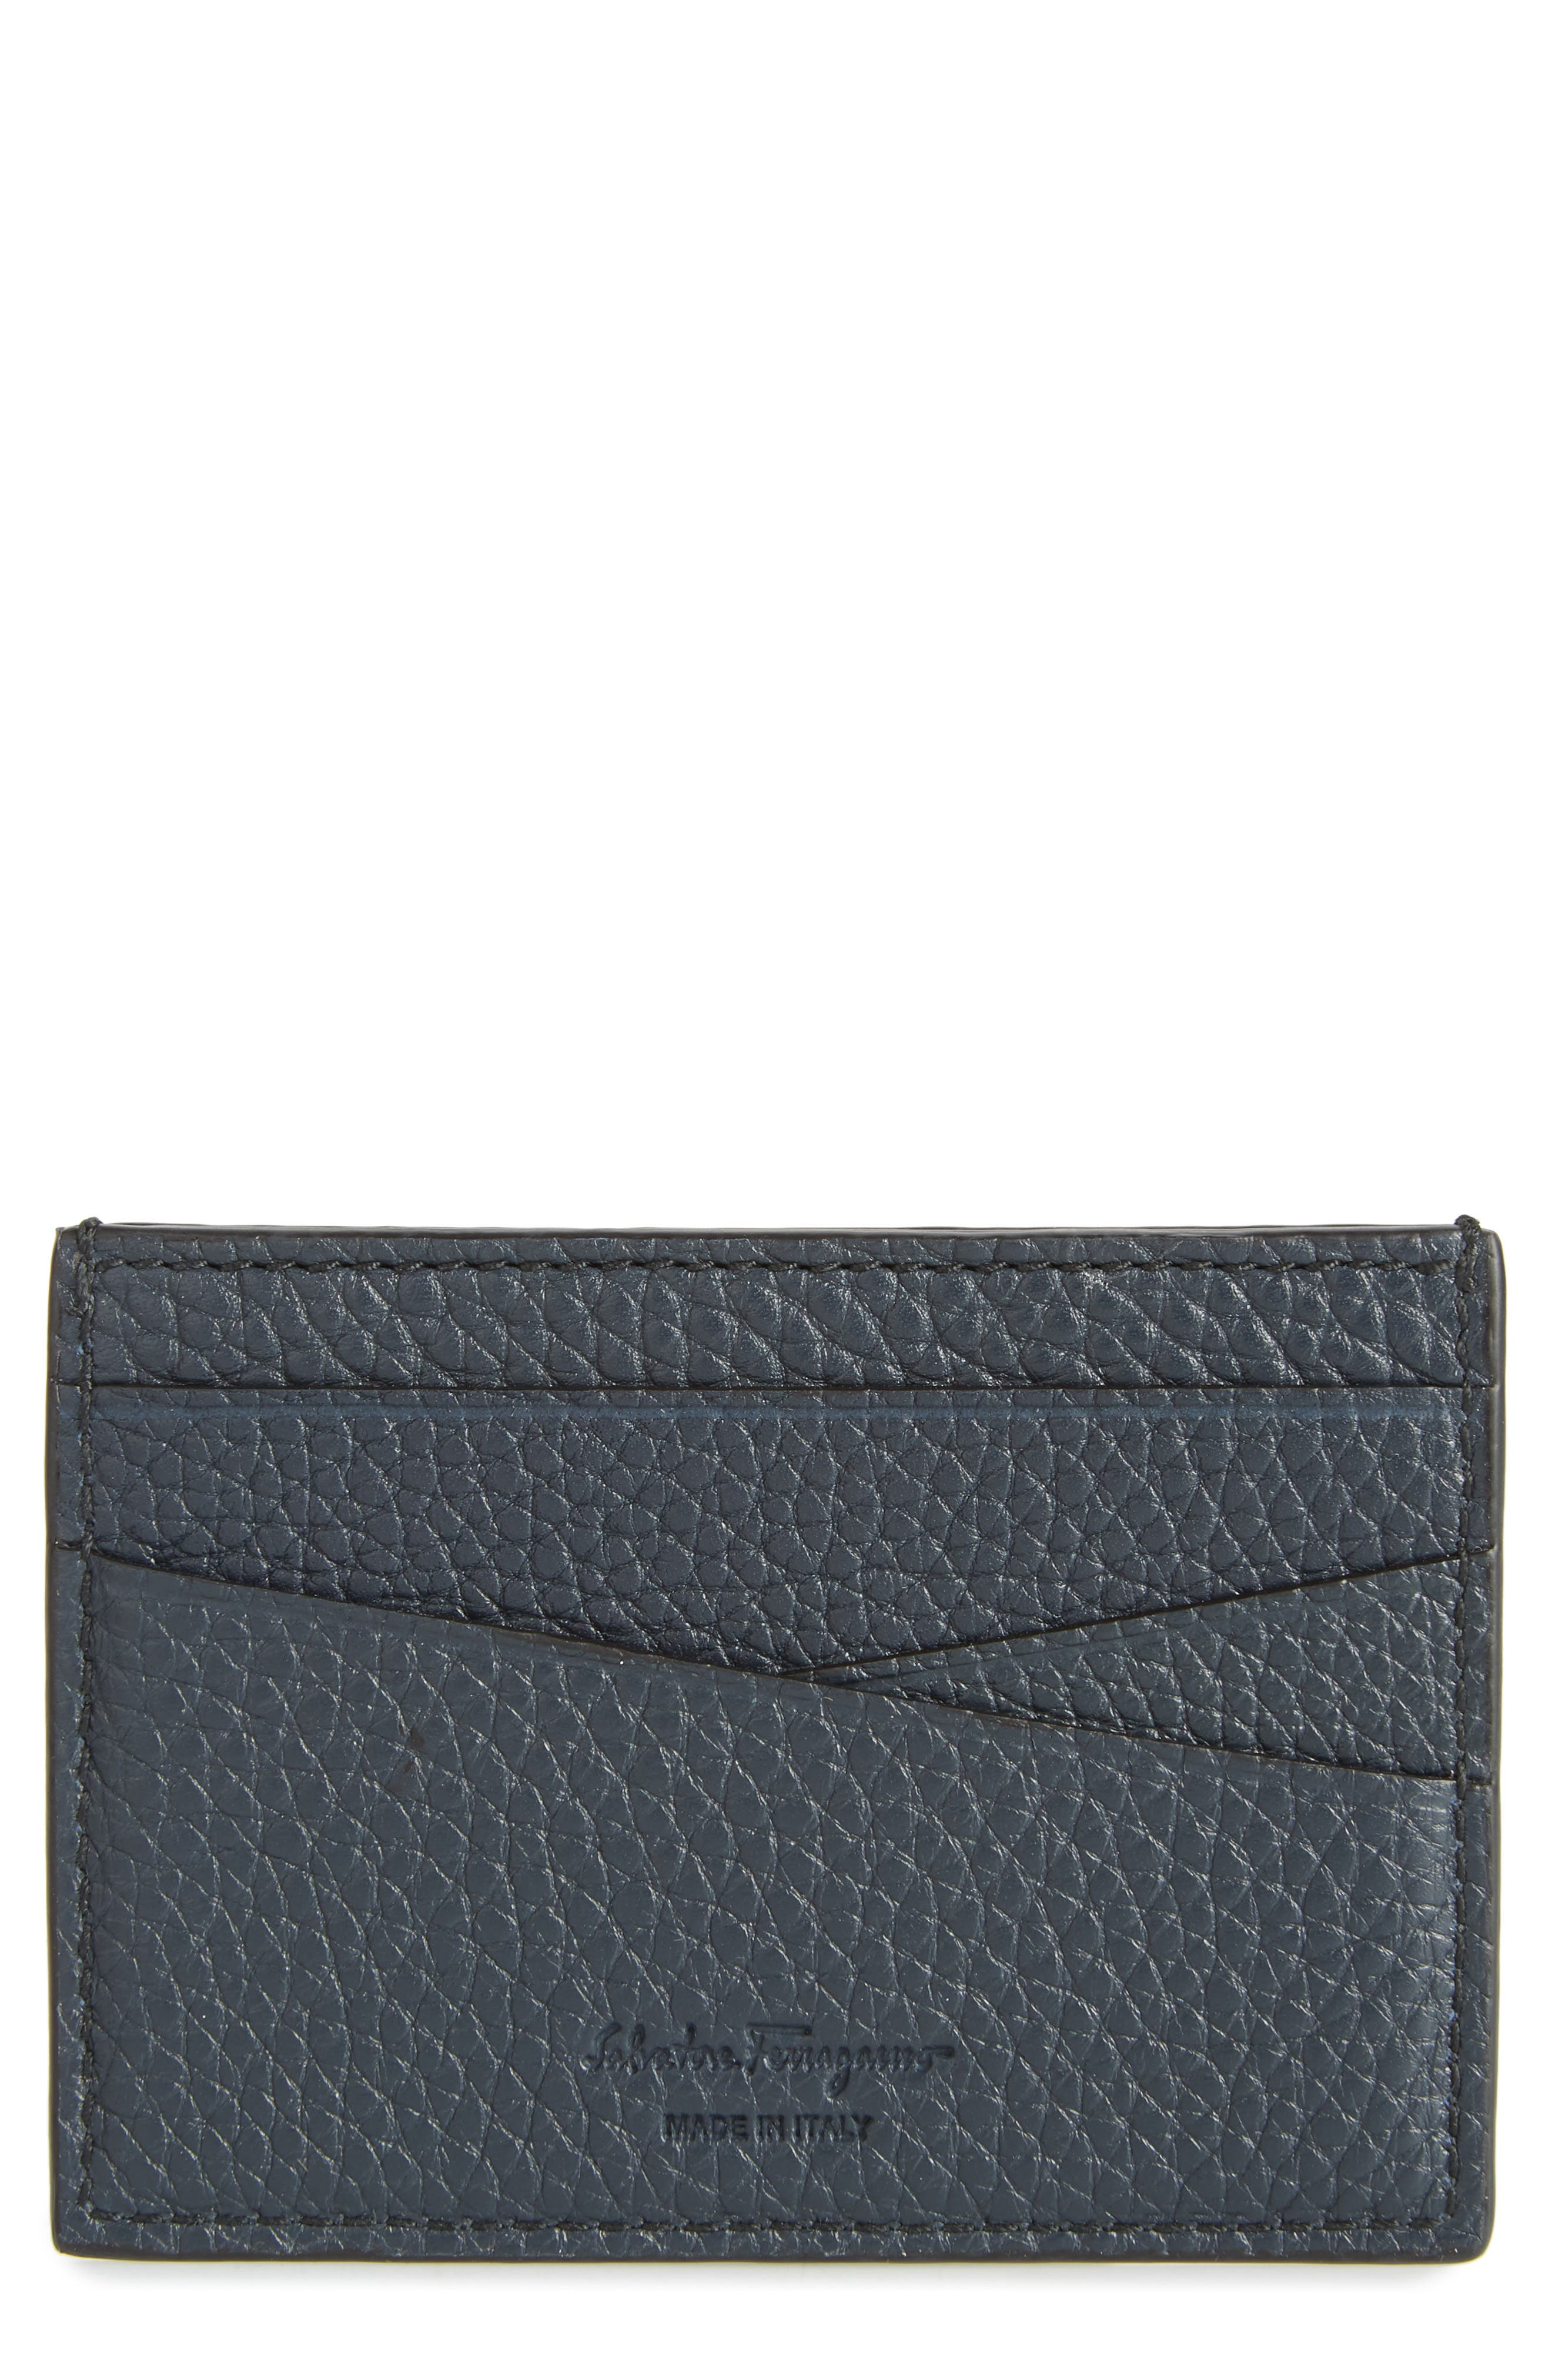 New Firenze Leather Card Case,                         Main,                         color, NERO